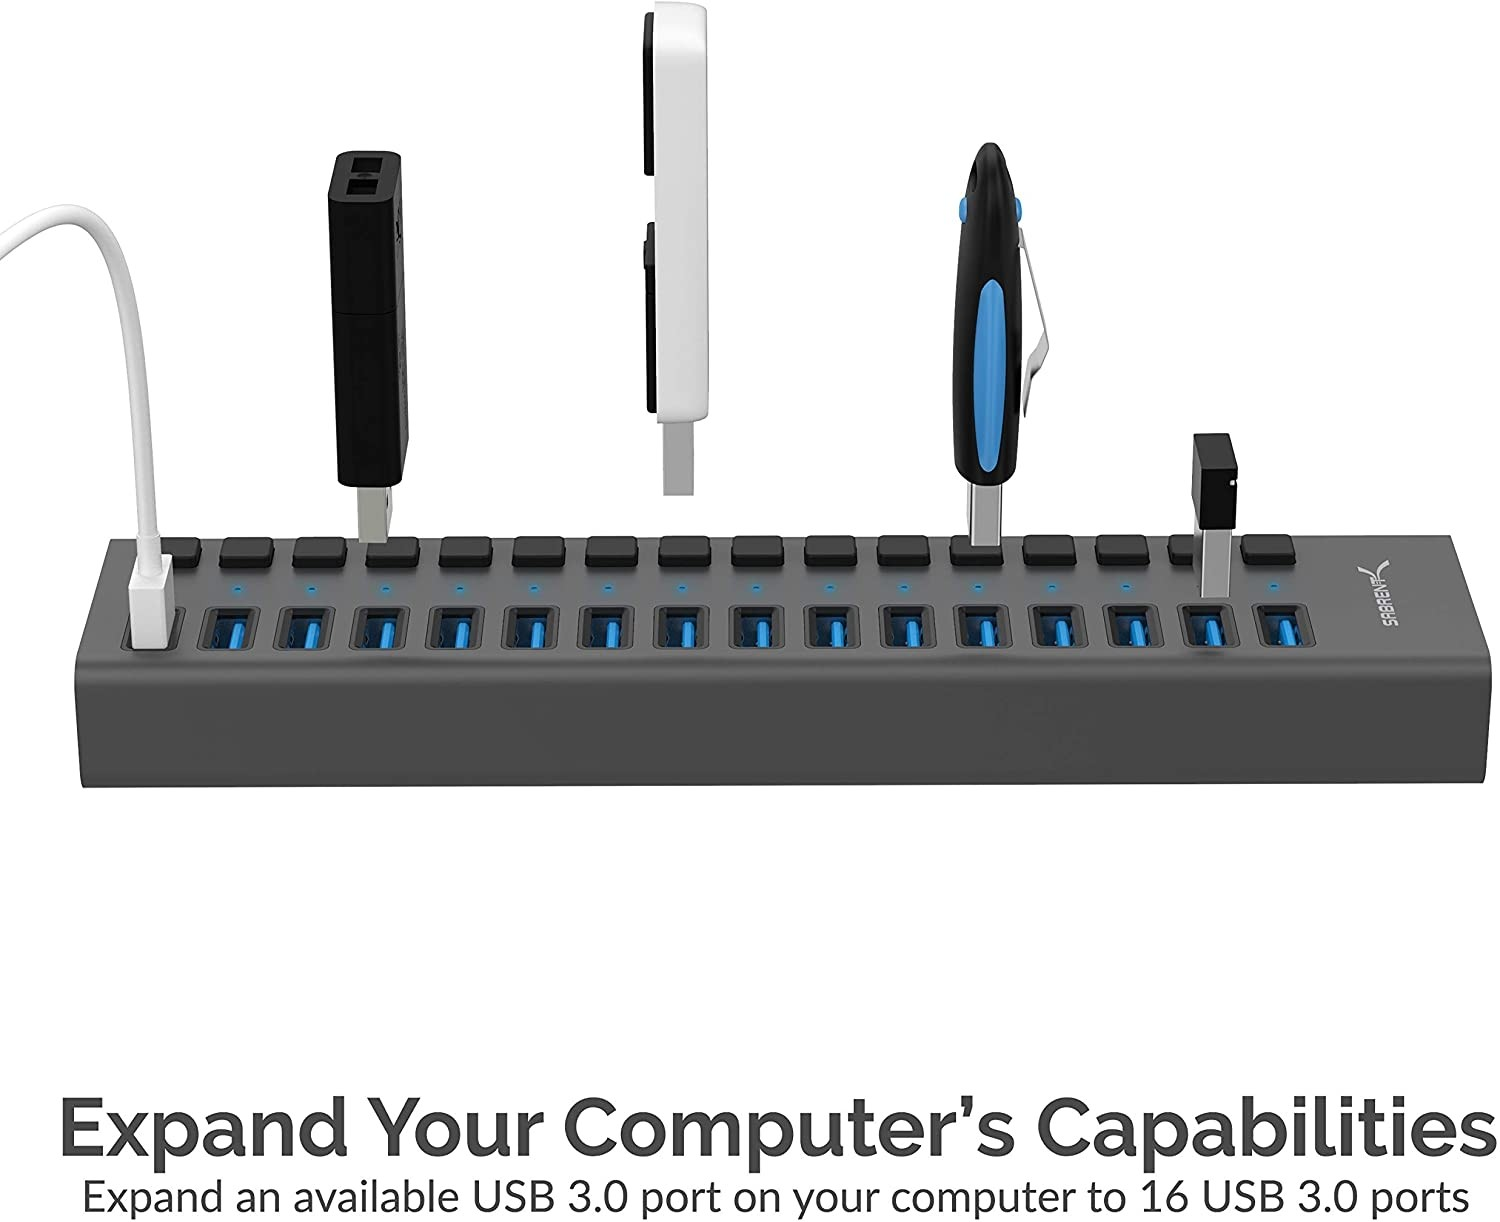 Sabrent USB 3.0 16-Port Aluminum HUB with Power Switches and LEDs, HB-PU16